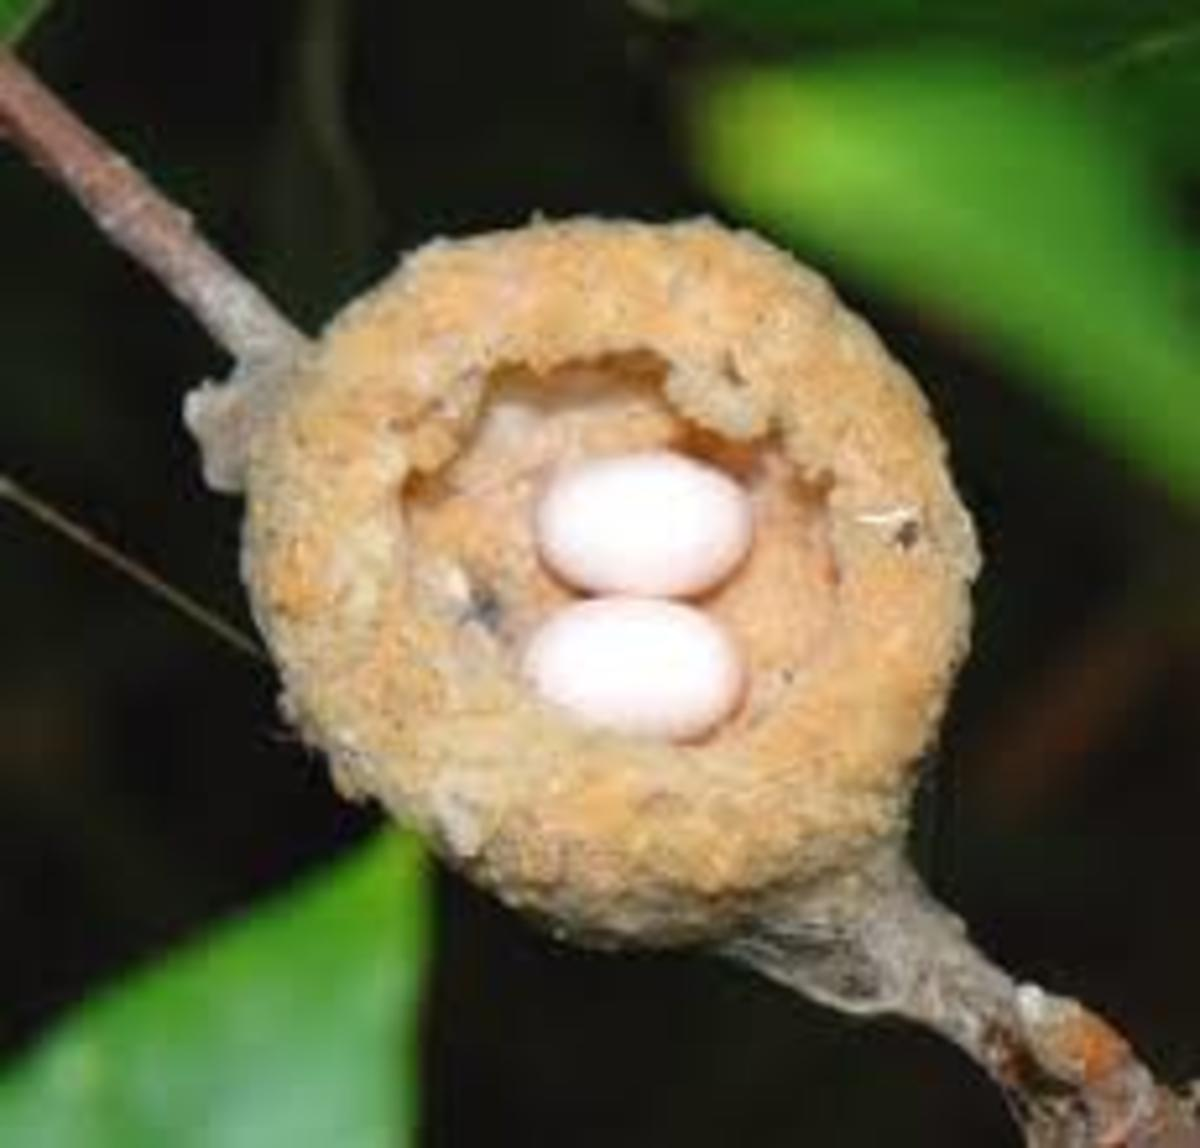 Hummingbird nest—a downy little cup with its clutch of two jelly bean sized eggs.